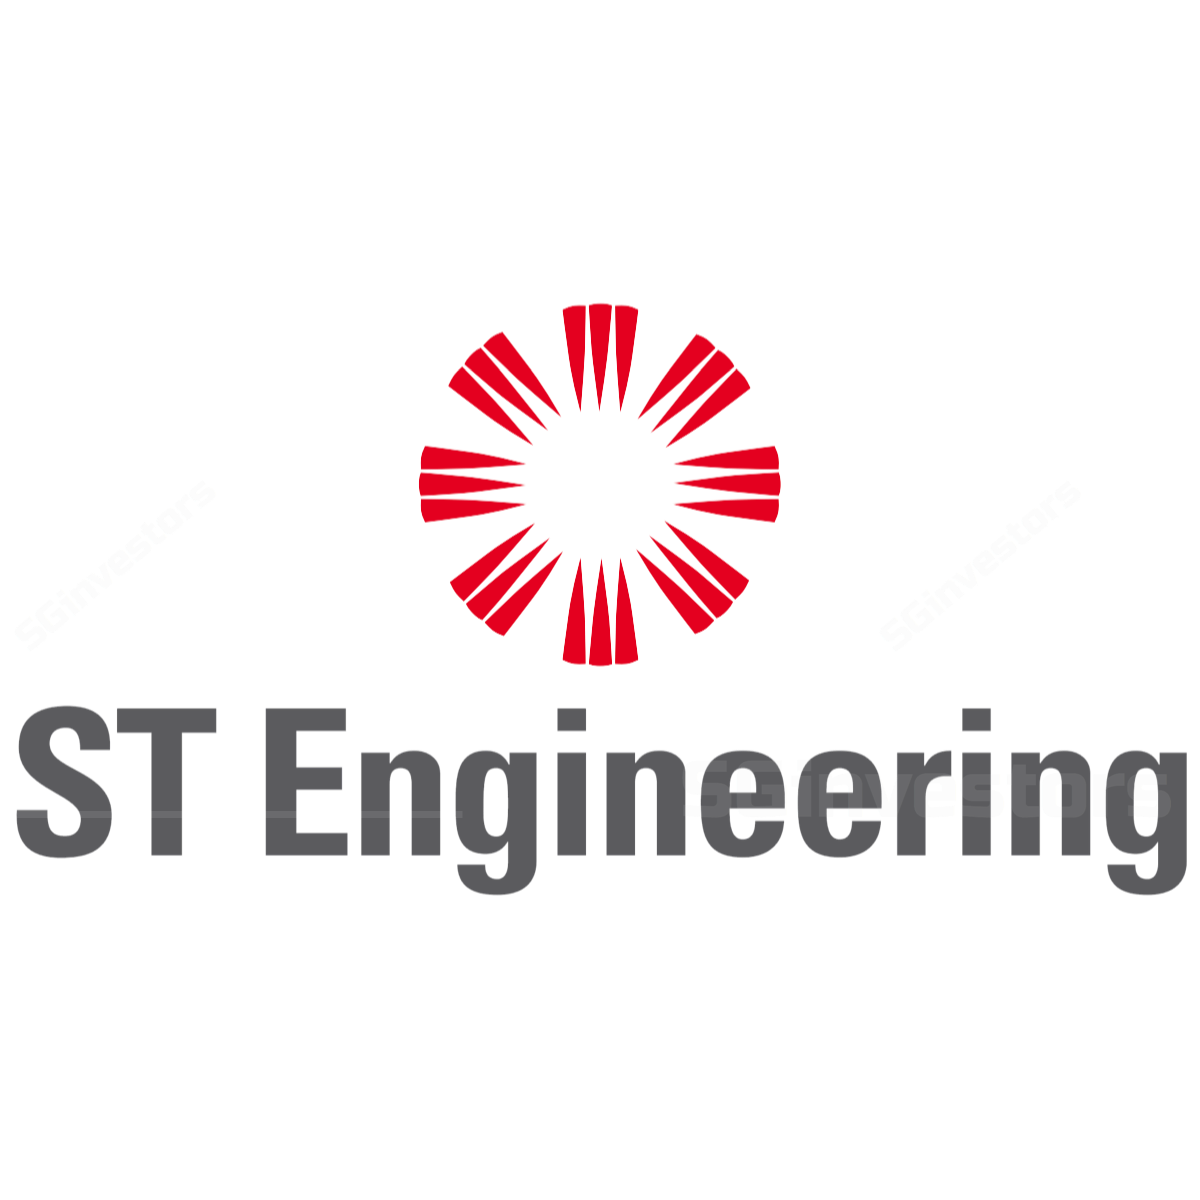 ST Engineering - DBS Vickers 2016-12-13: Earnings should rebound in FY17